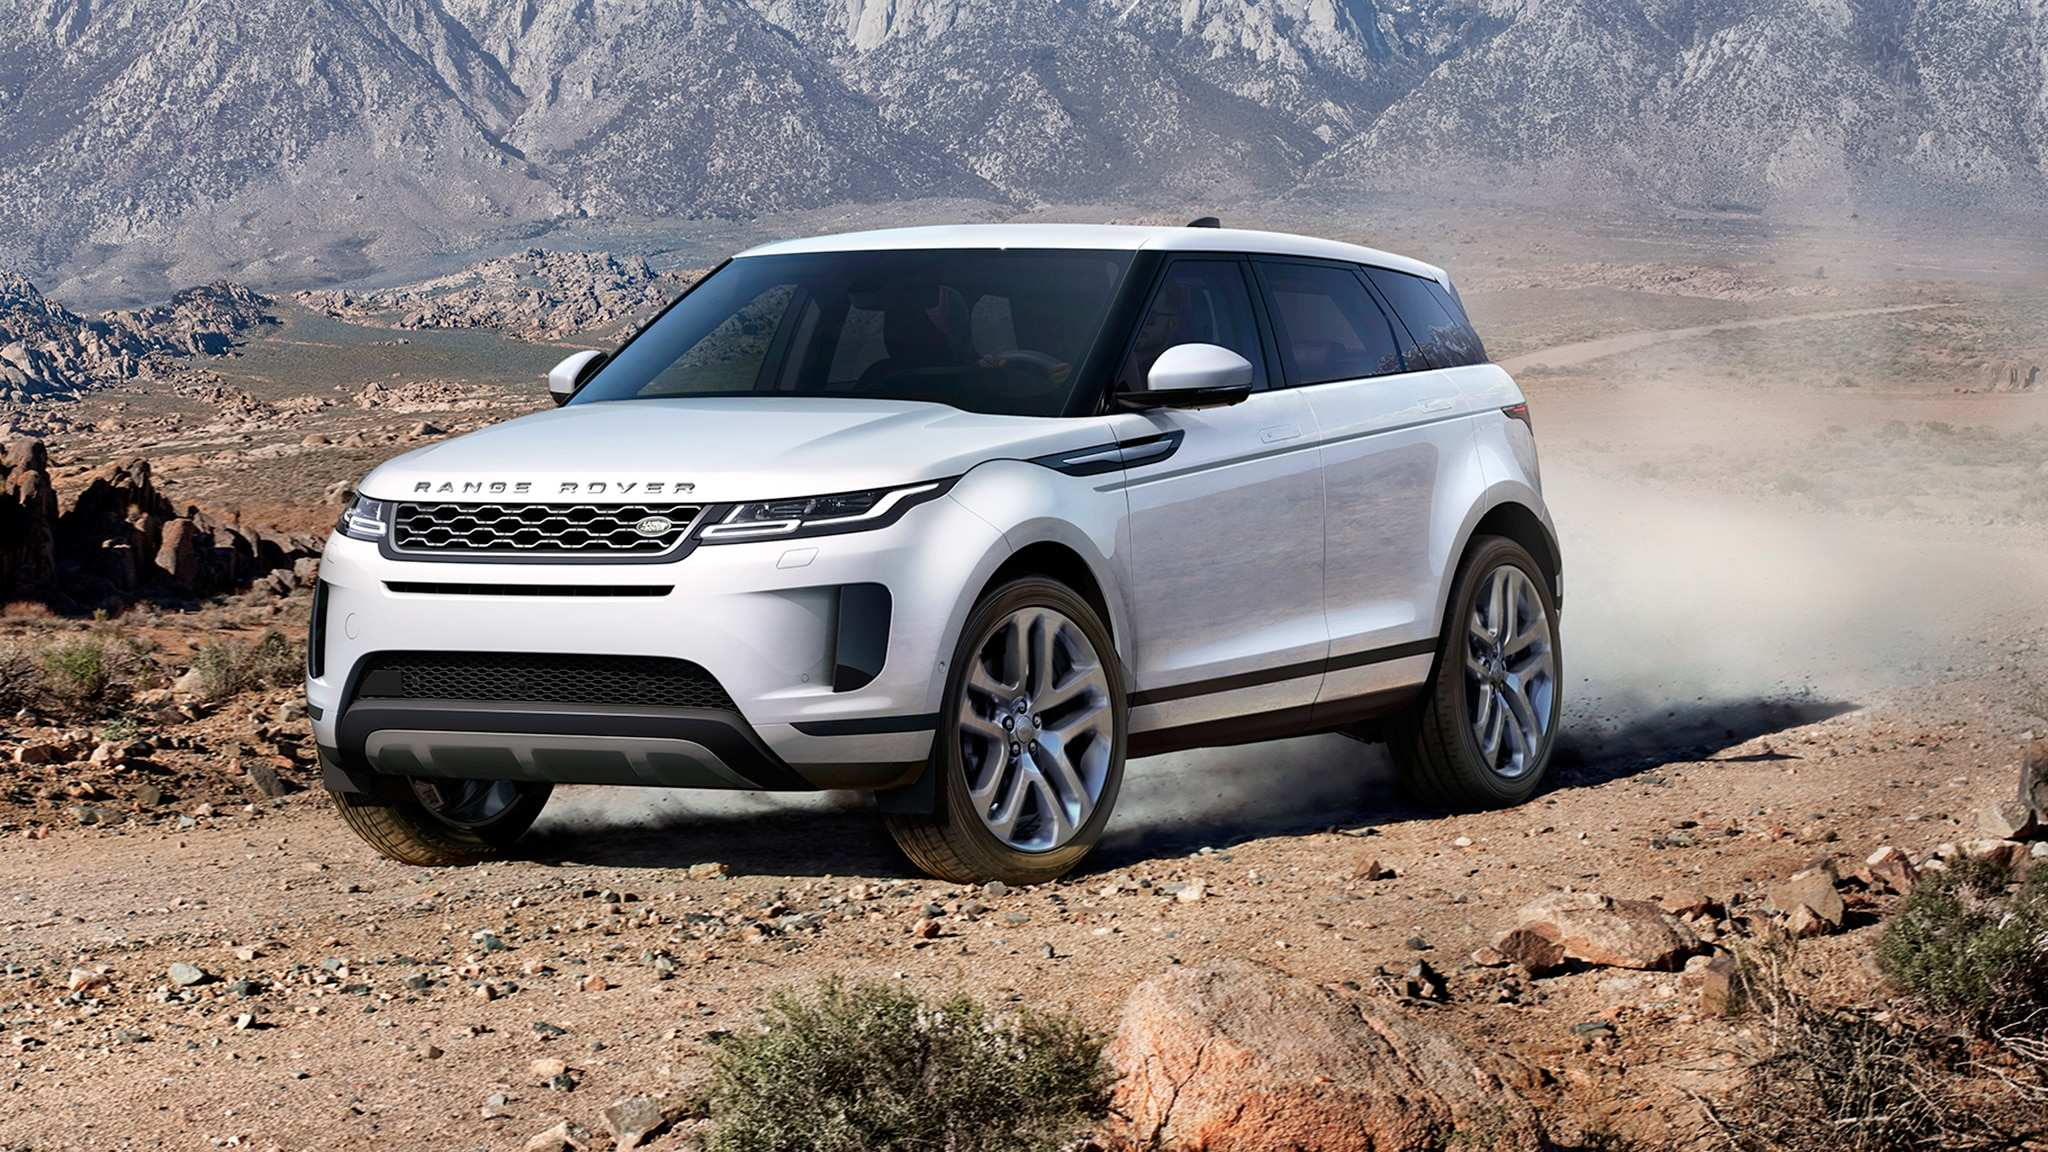 78 All New 2020 Land Rover Lr2 Release Date